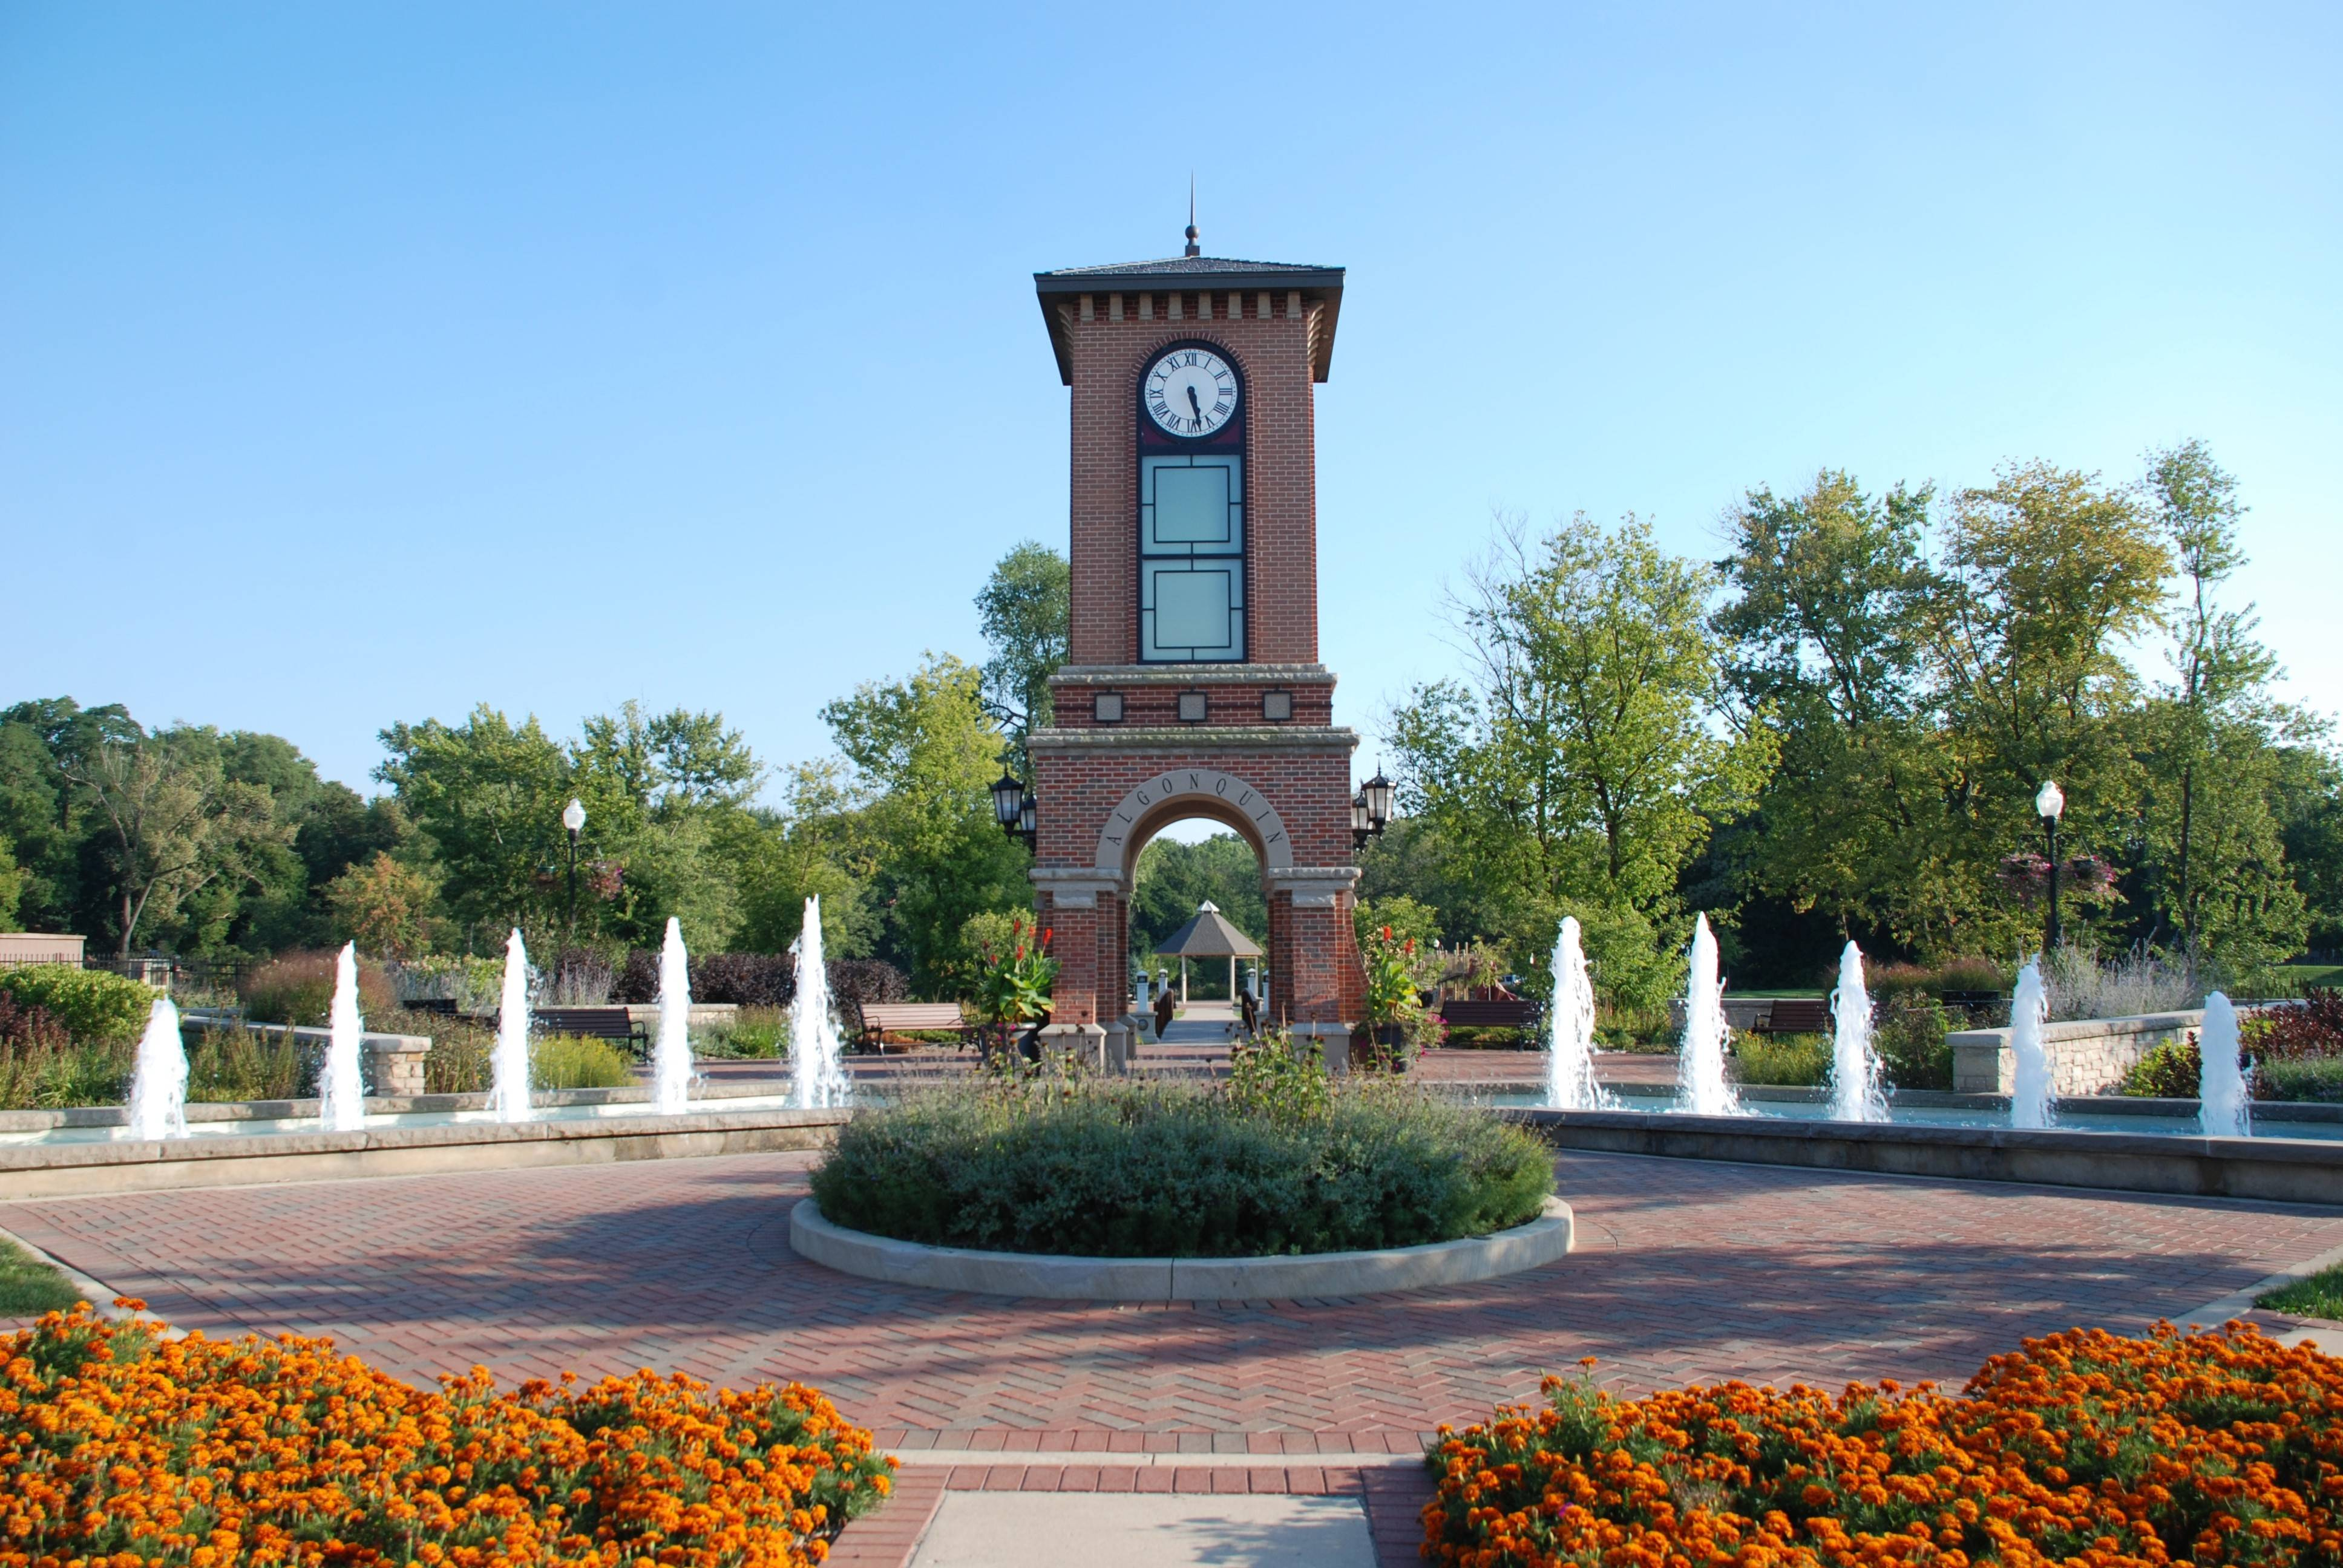 Come July, Algonquin residents will see a spike in their telephone and Internet service bills. The village board this week approved a 60 percent increase to the telecommunications tax to help fund park improvements, such as playground maintenance, trails, bike paths and other infrastructure upgrades. Pictured here is the Cornish Park clock tower, located along the Fox River at 101 S. Harrison St., in downtown Algonquin that was completed in 2006.